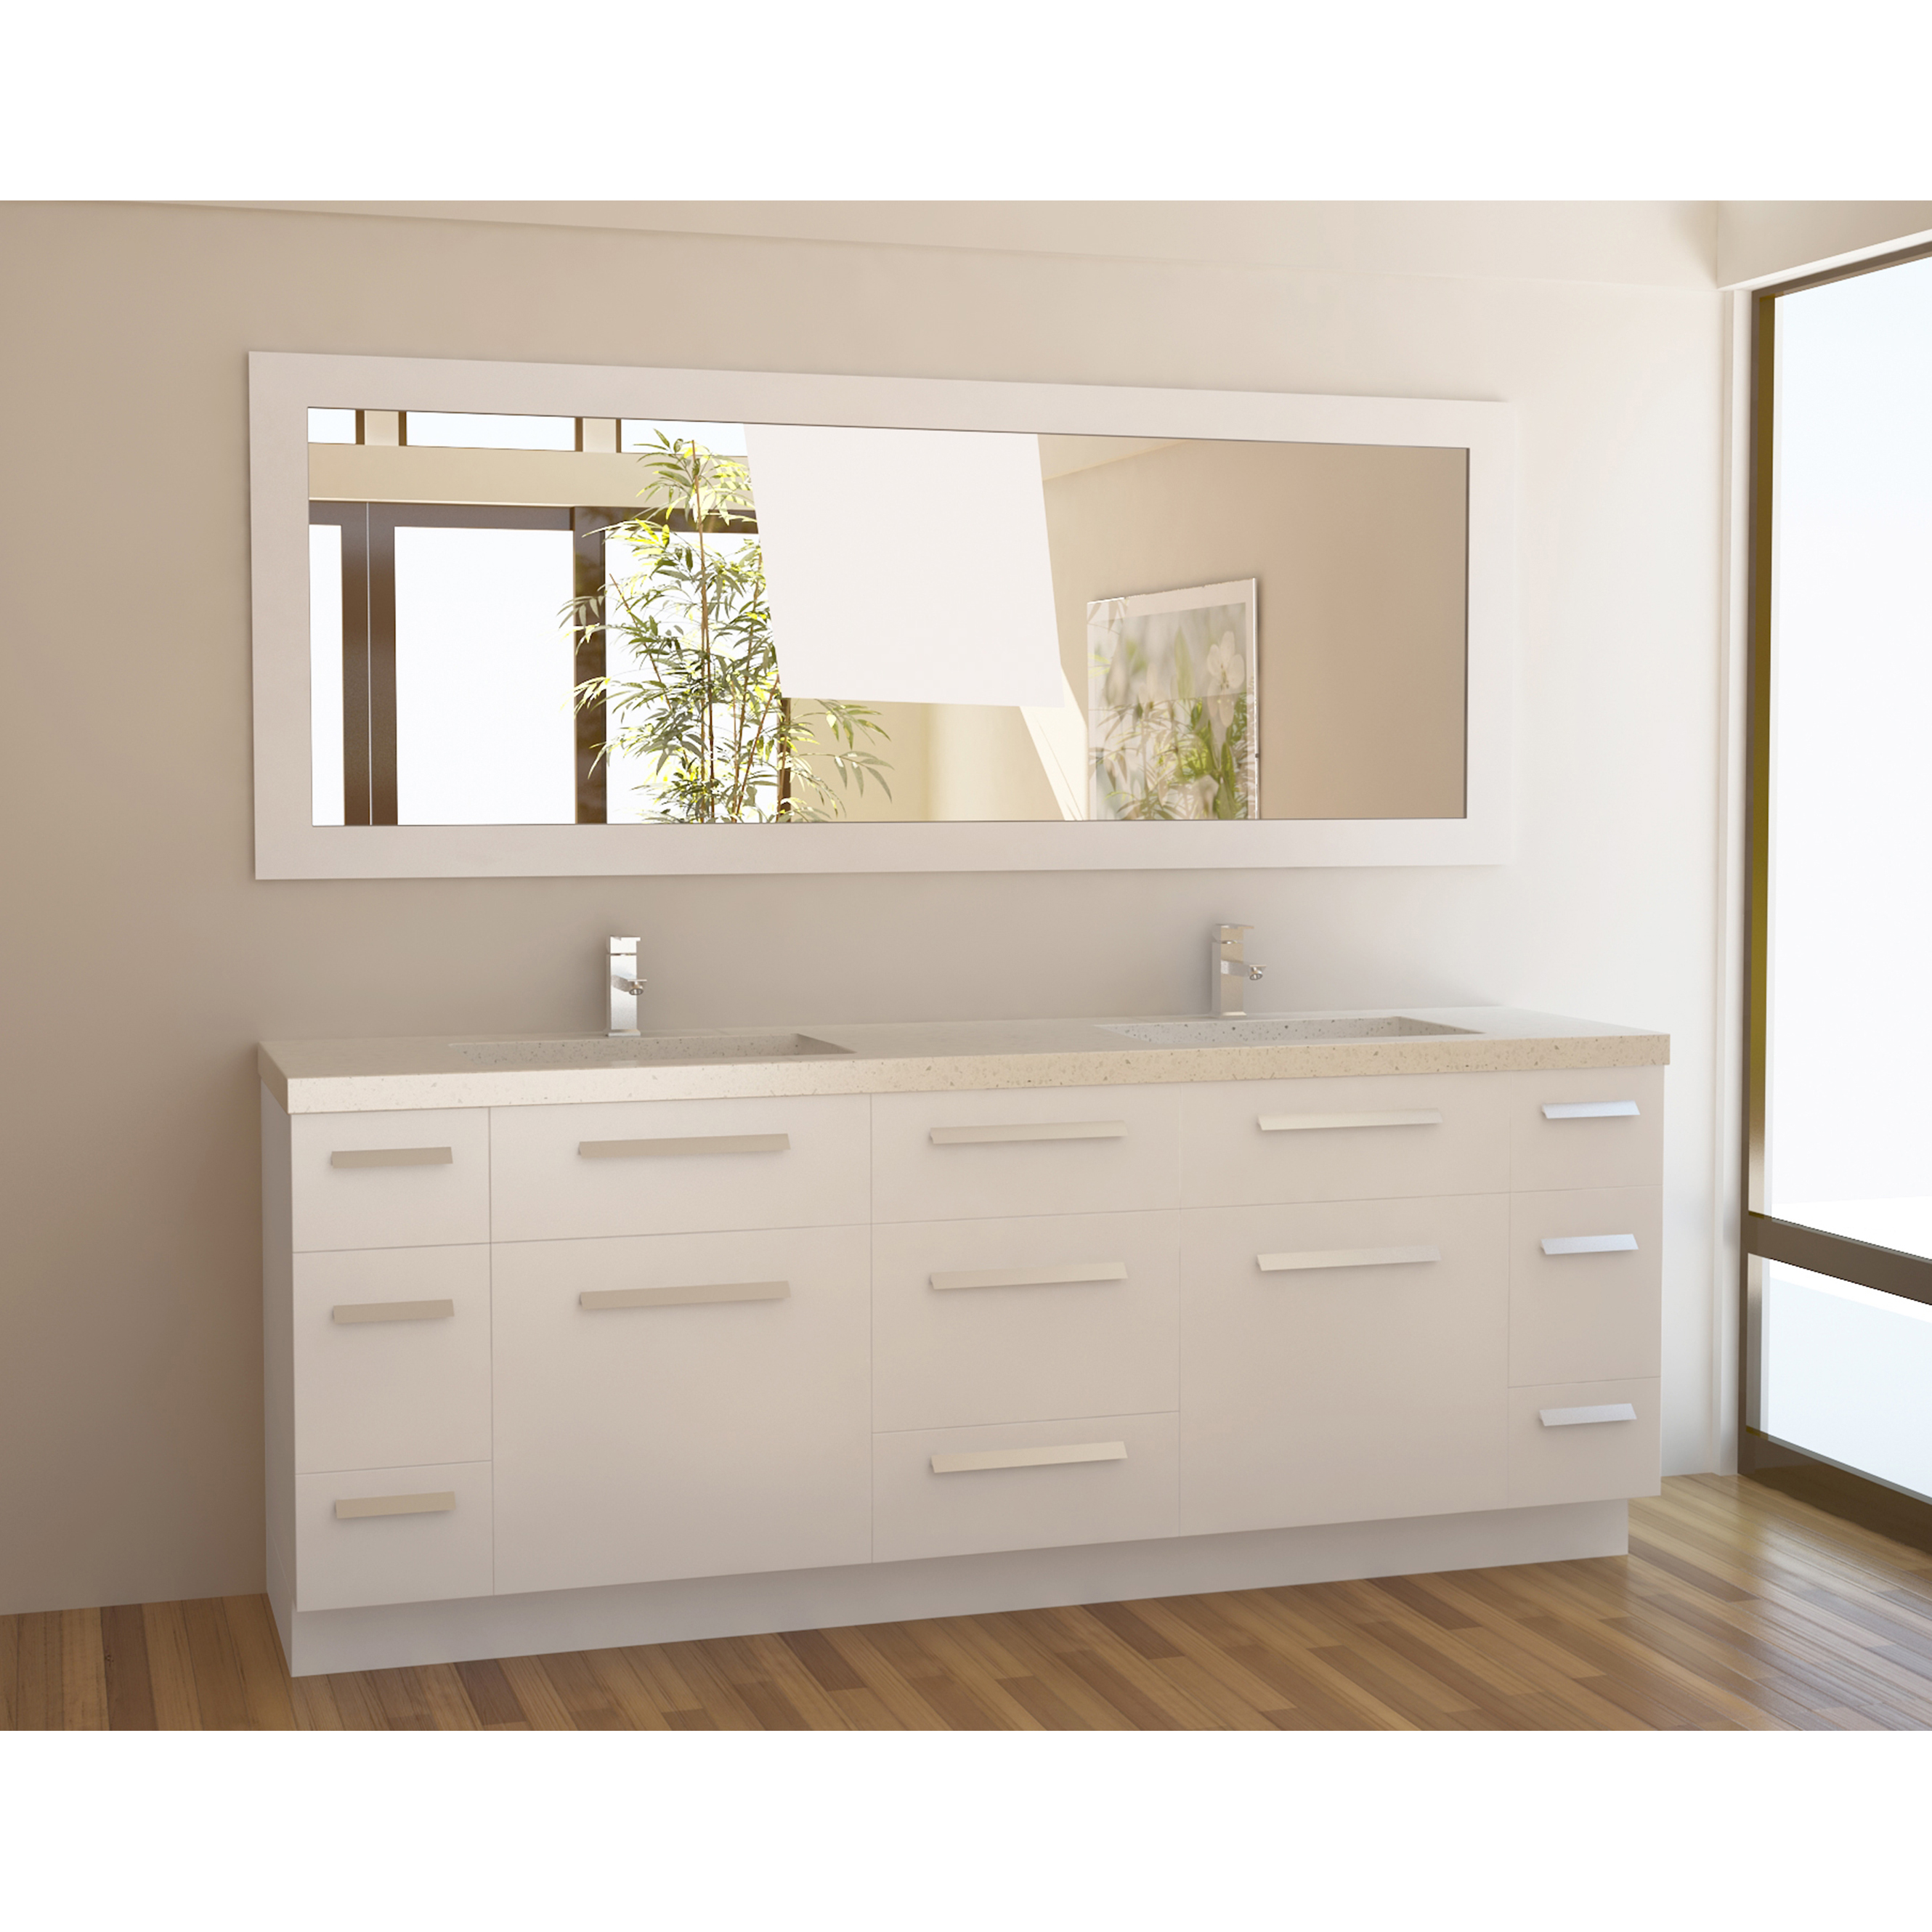 Vanity Bedroom Furniture 84 Inch Bathroom Vanity The Variants Homesfeed